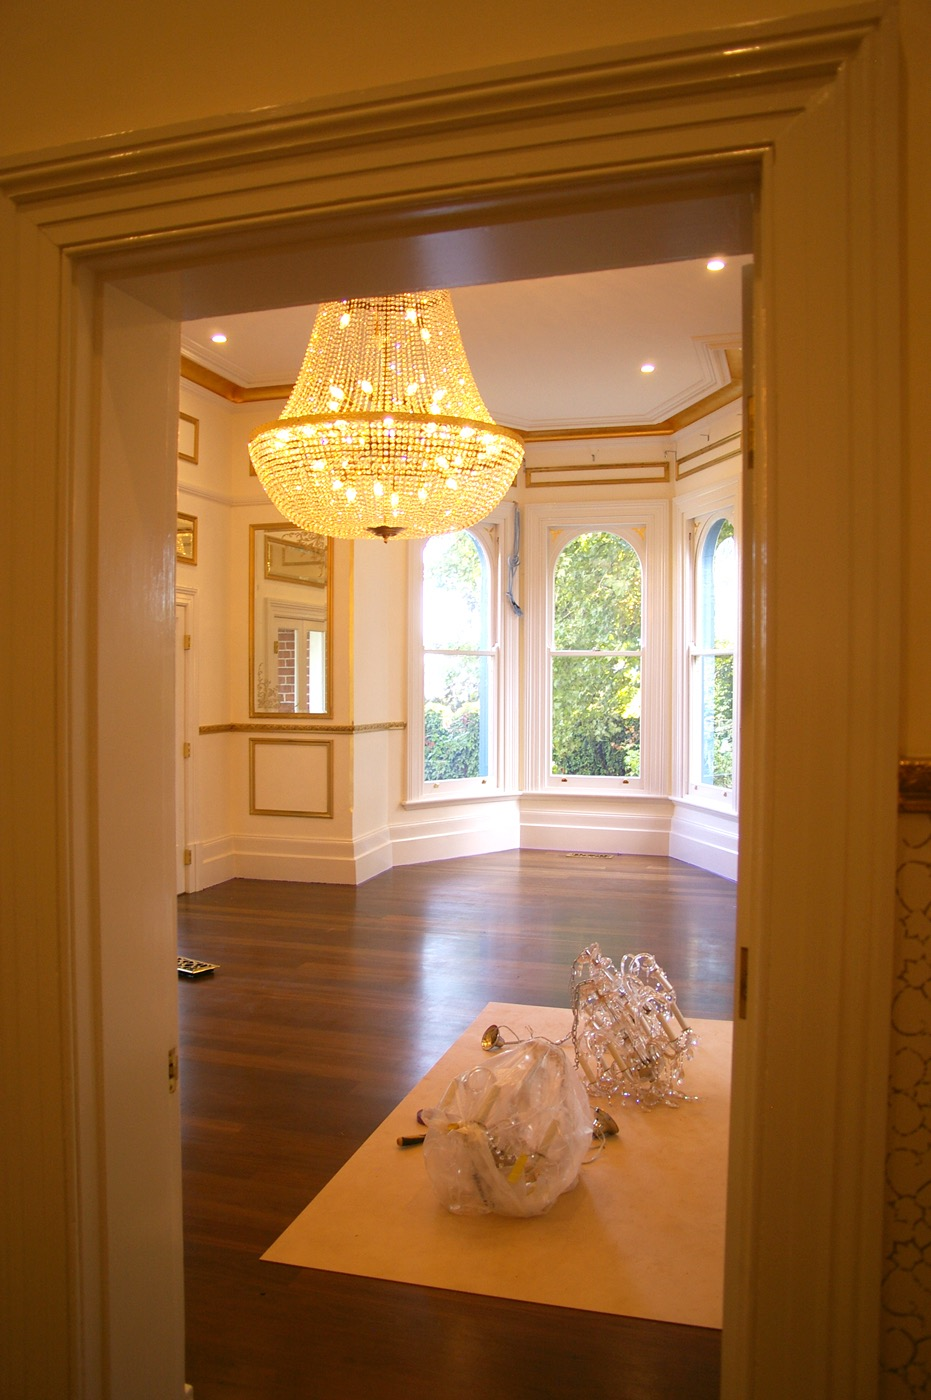 chandelier and interior house painting gold trim white millthorpe